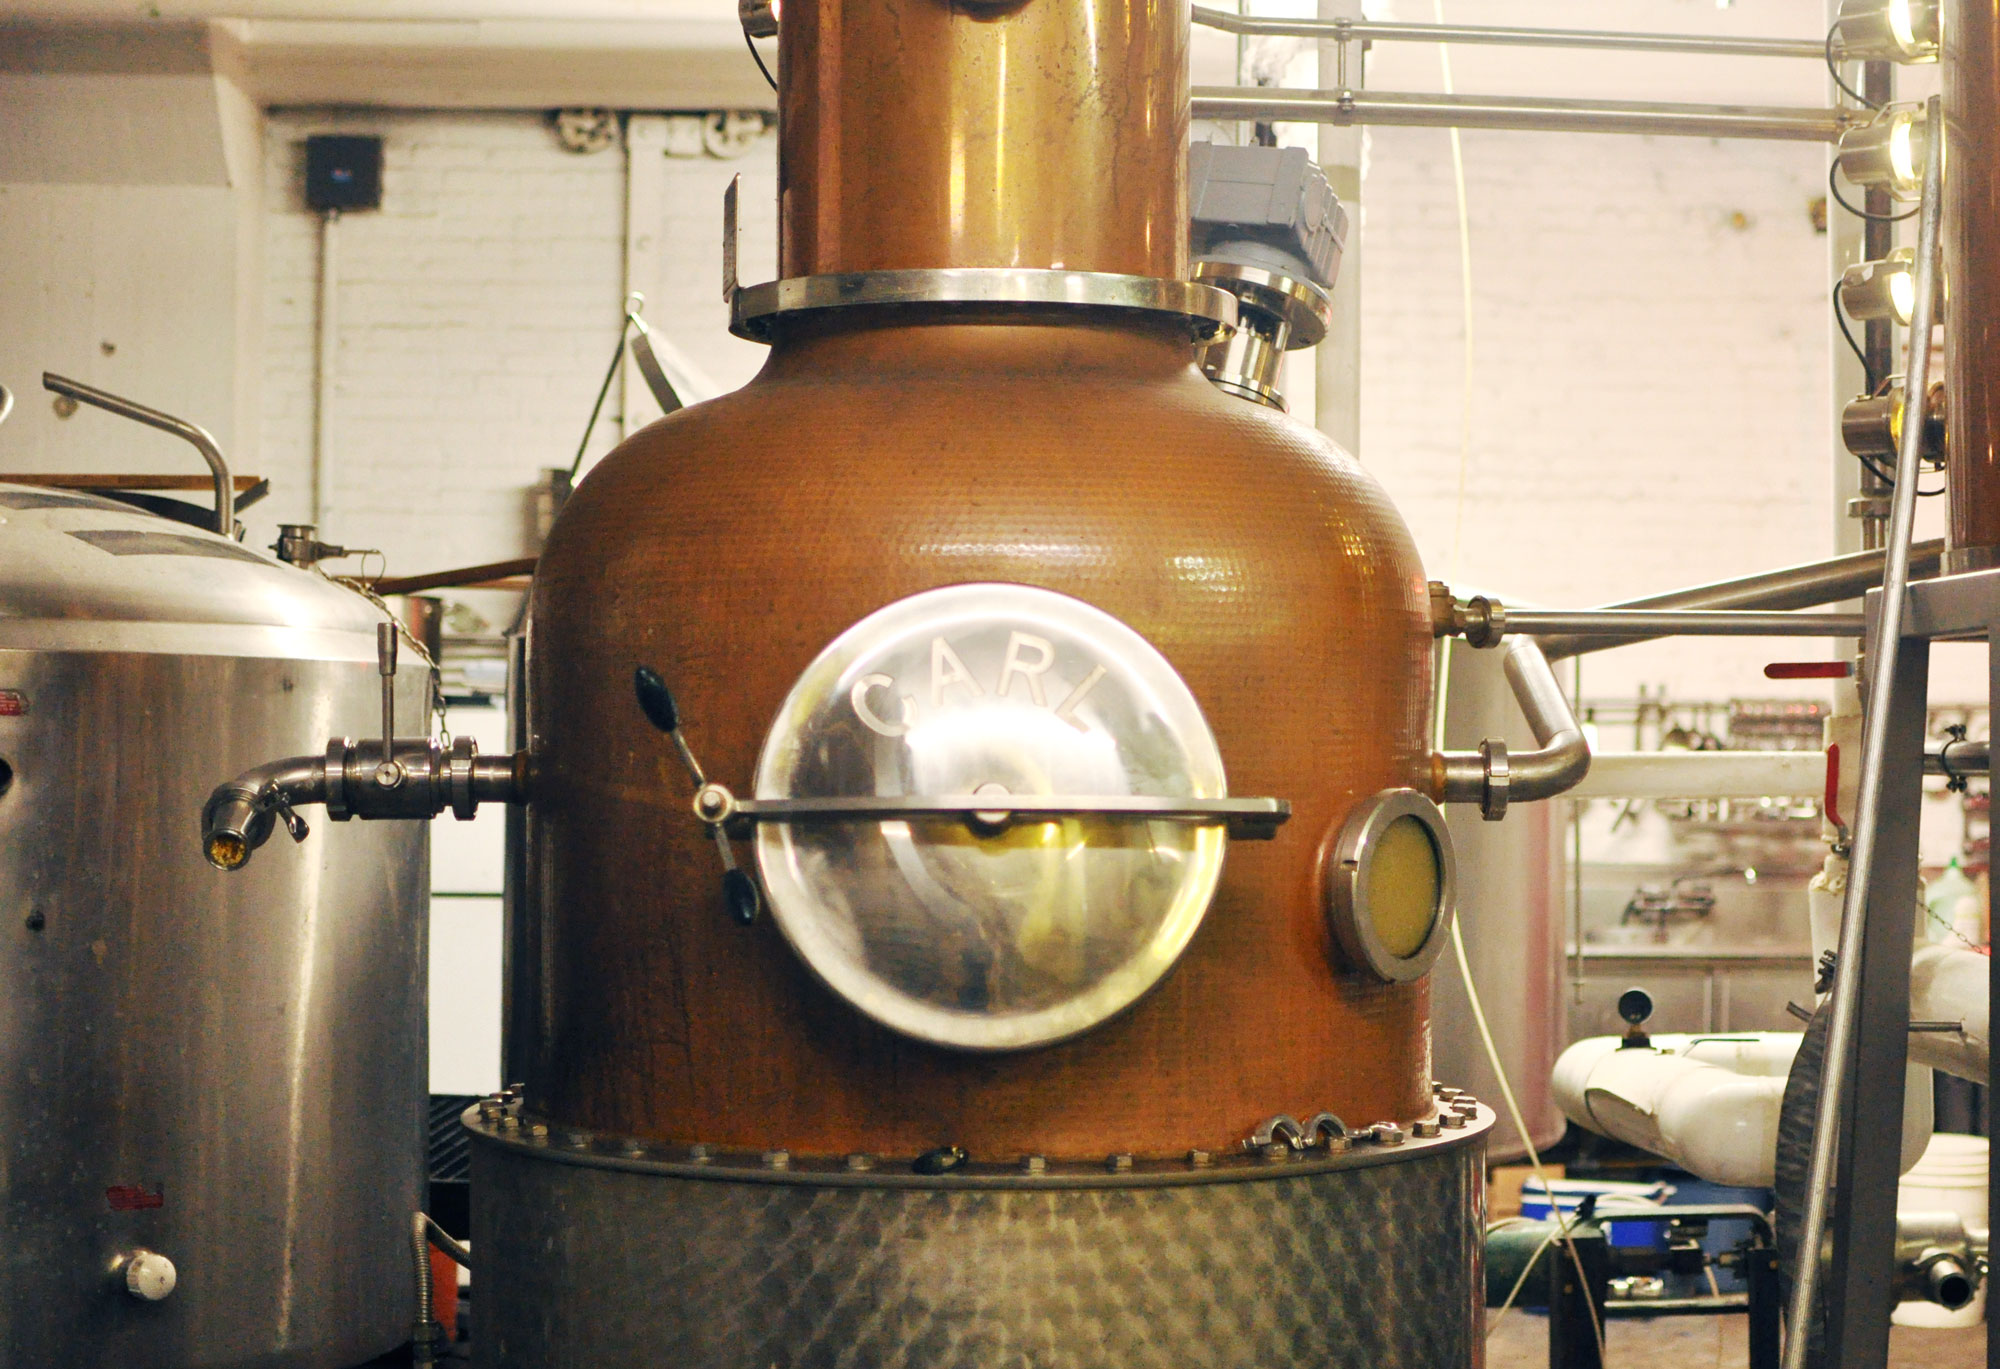 Carl brandy still